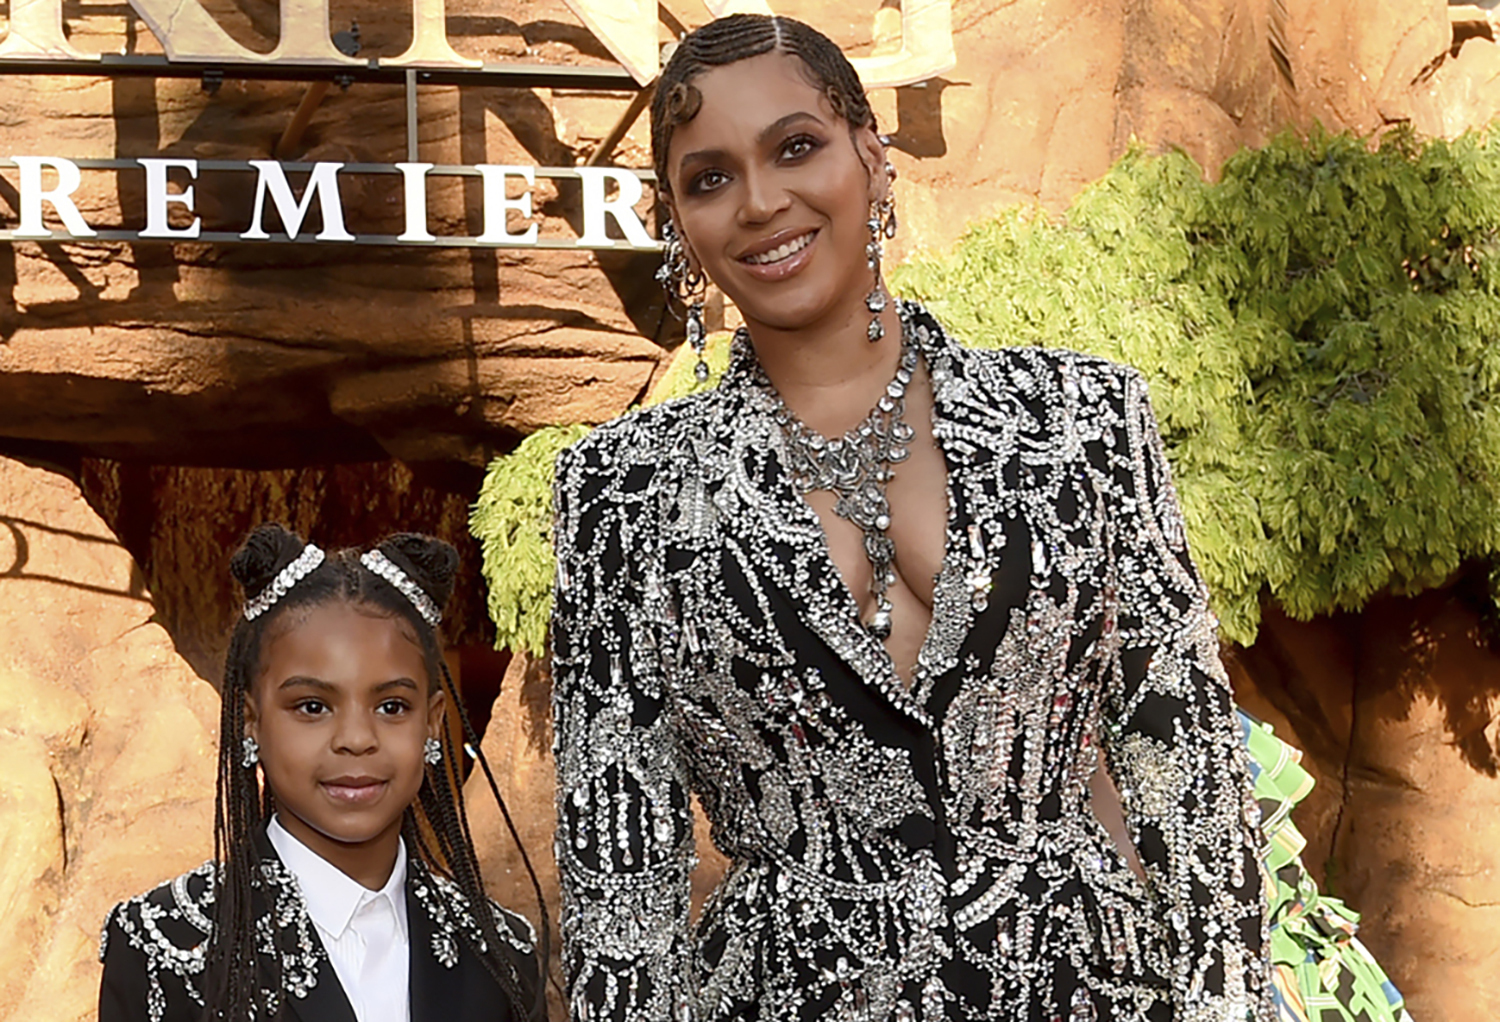 """Beyonce, right, and her daughter Blue Ivy Carter arrive at the world premiere of """"The Lion King"""" in Los Angeles on July 9, 2019. (Chris Pizzello/Invision/AP, File)"""